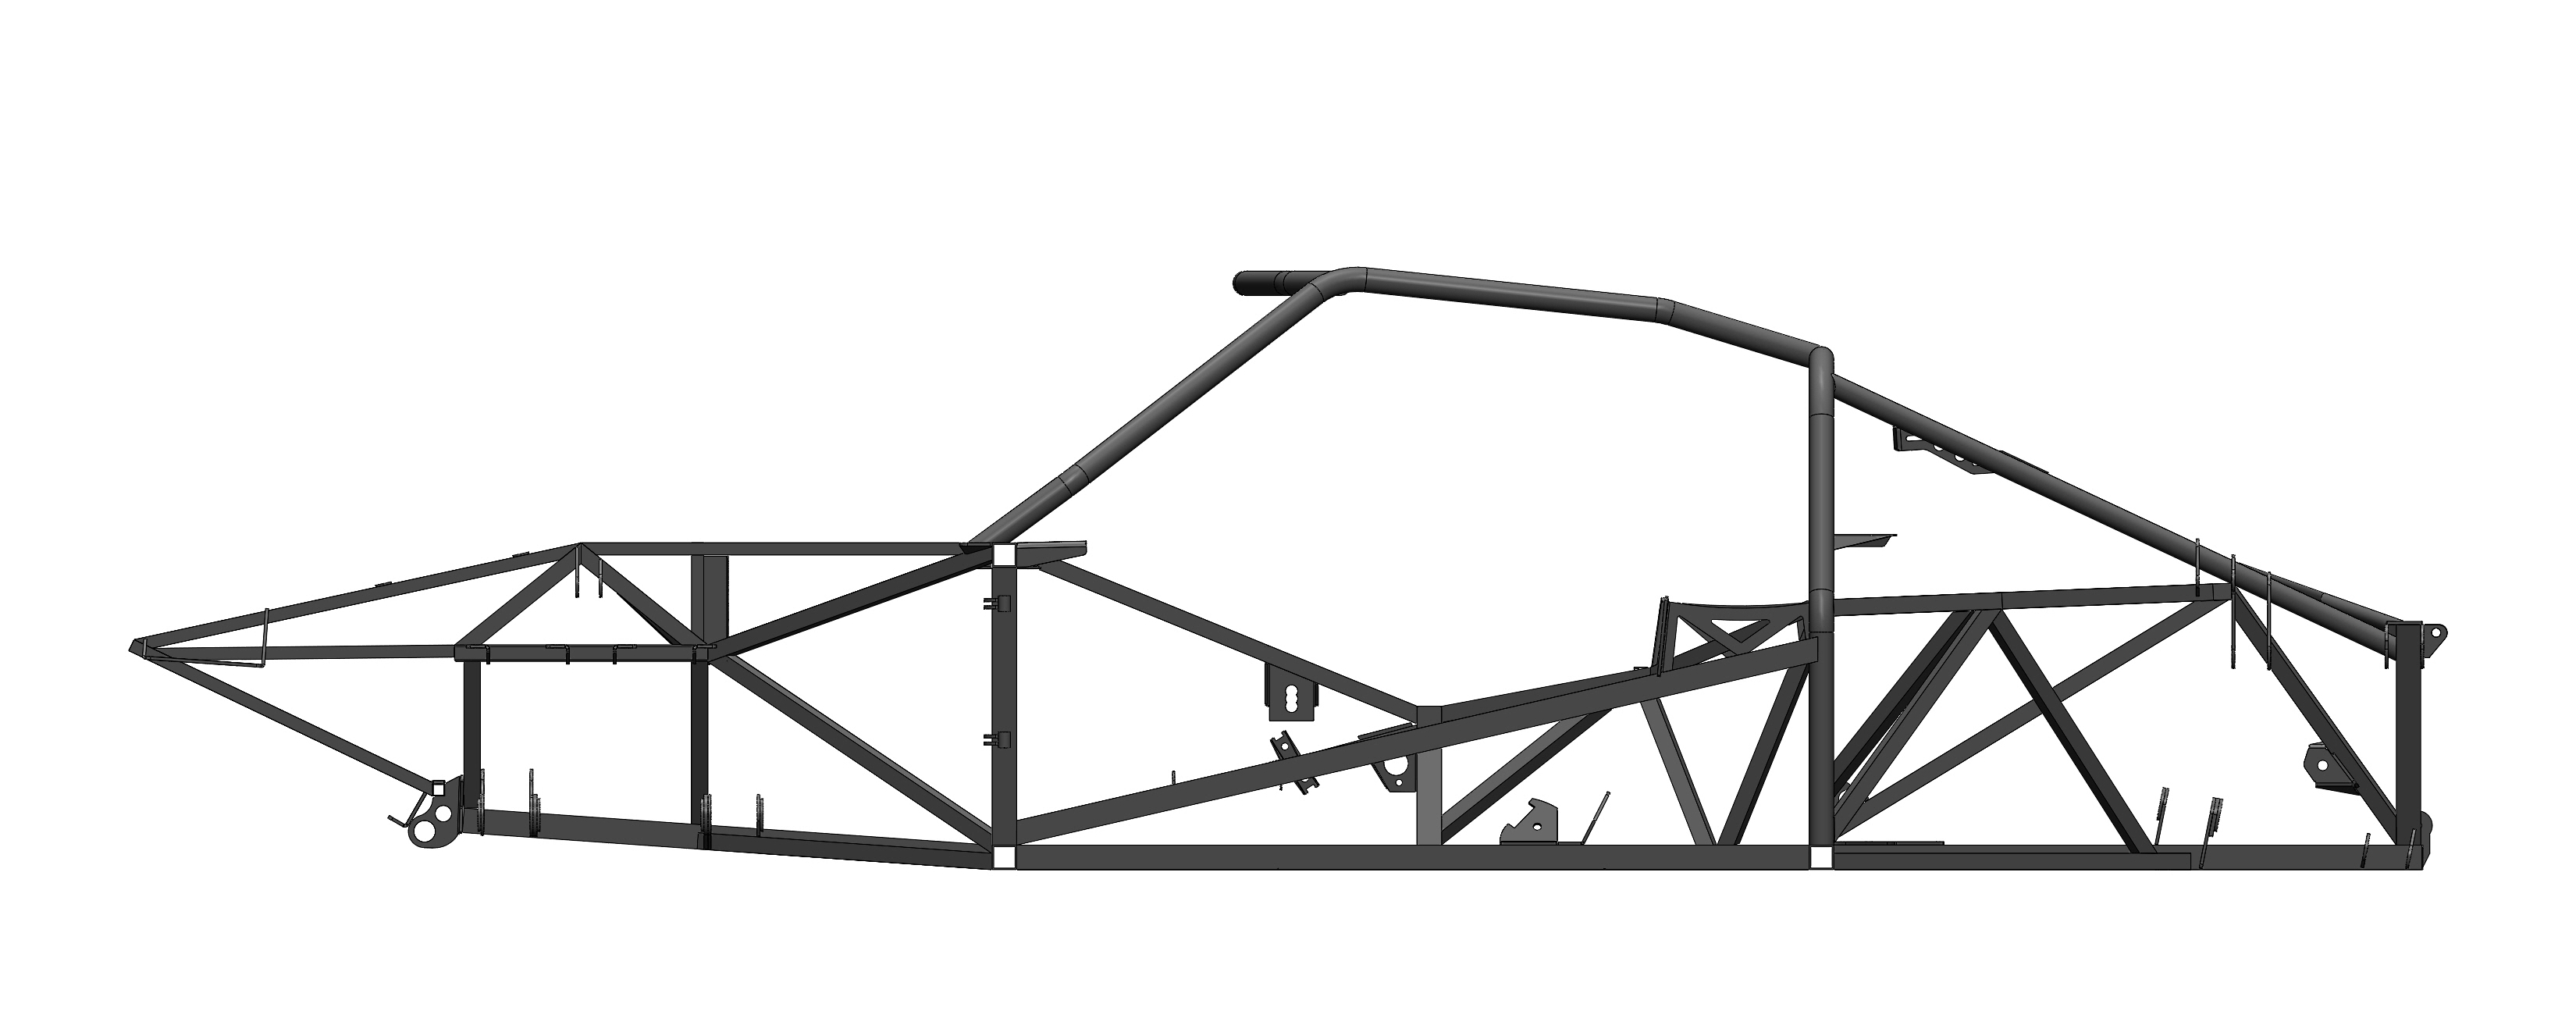 Anyone have a computer drawing of the GTM chassis by any chance?